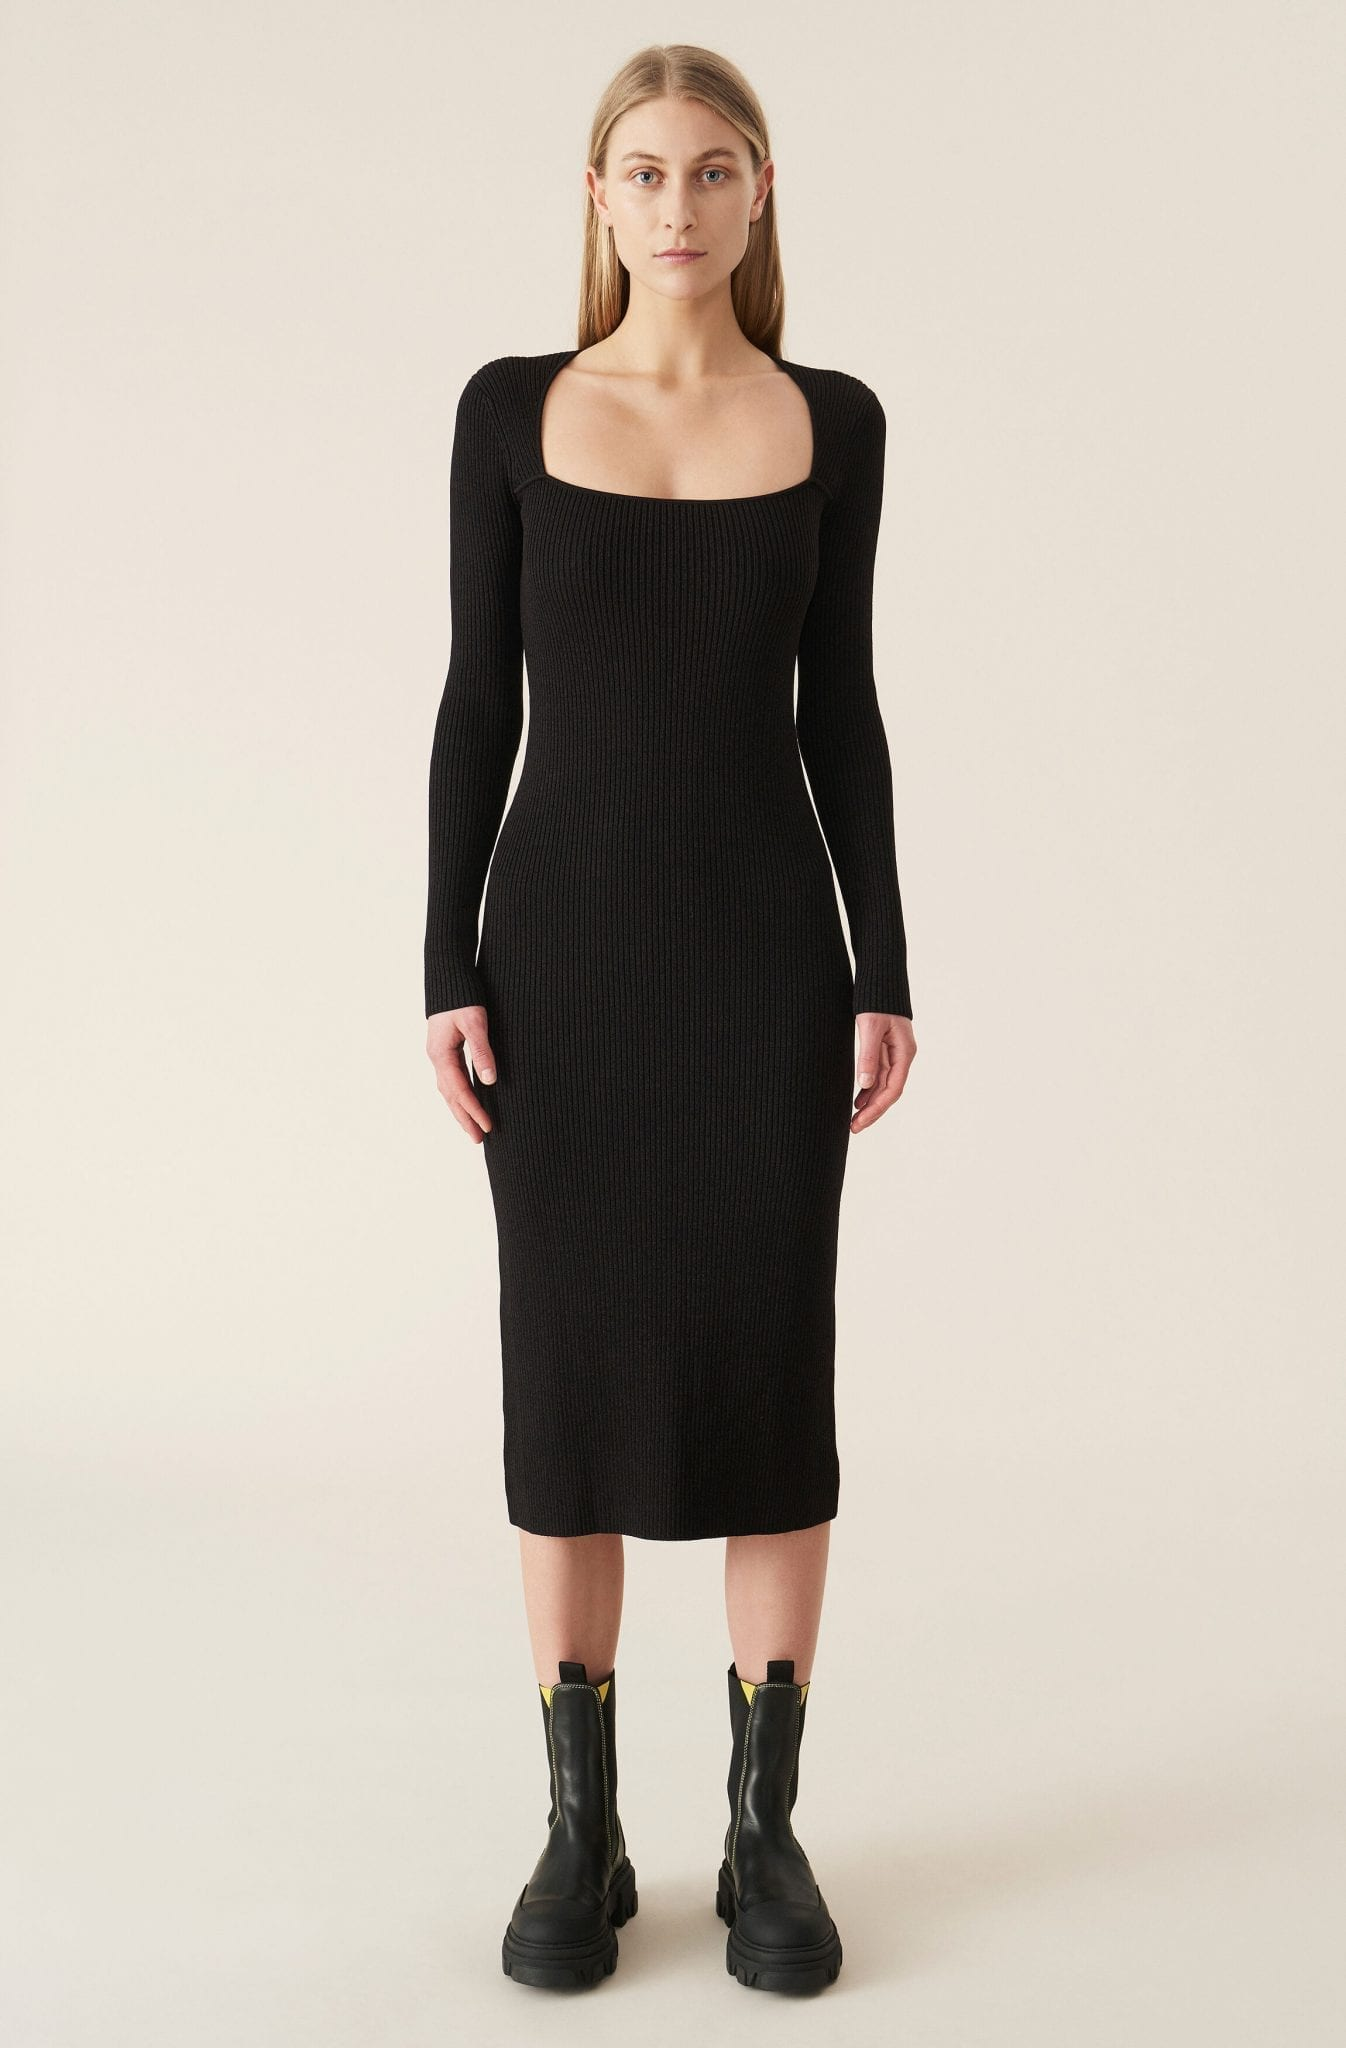 GANNI Melange Knit Dress